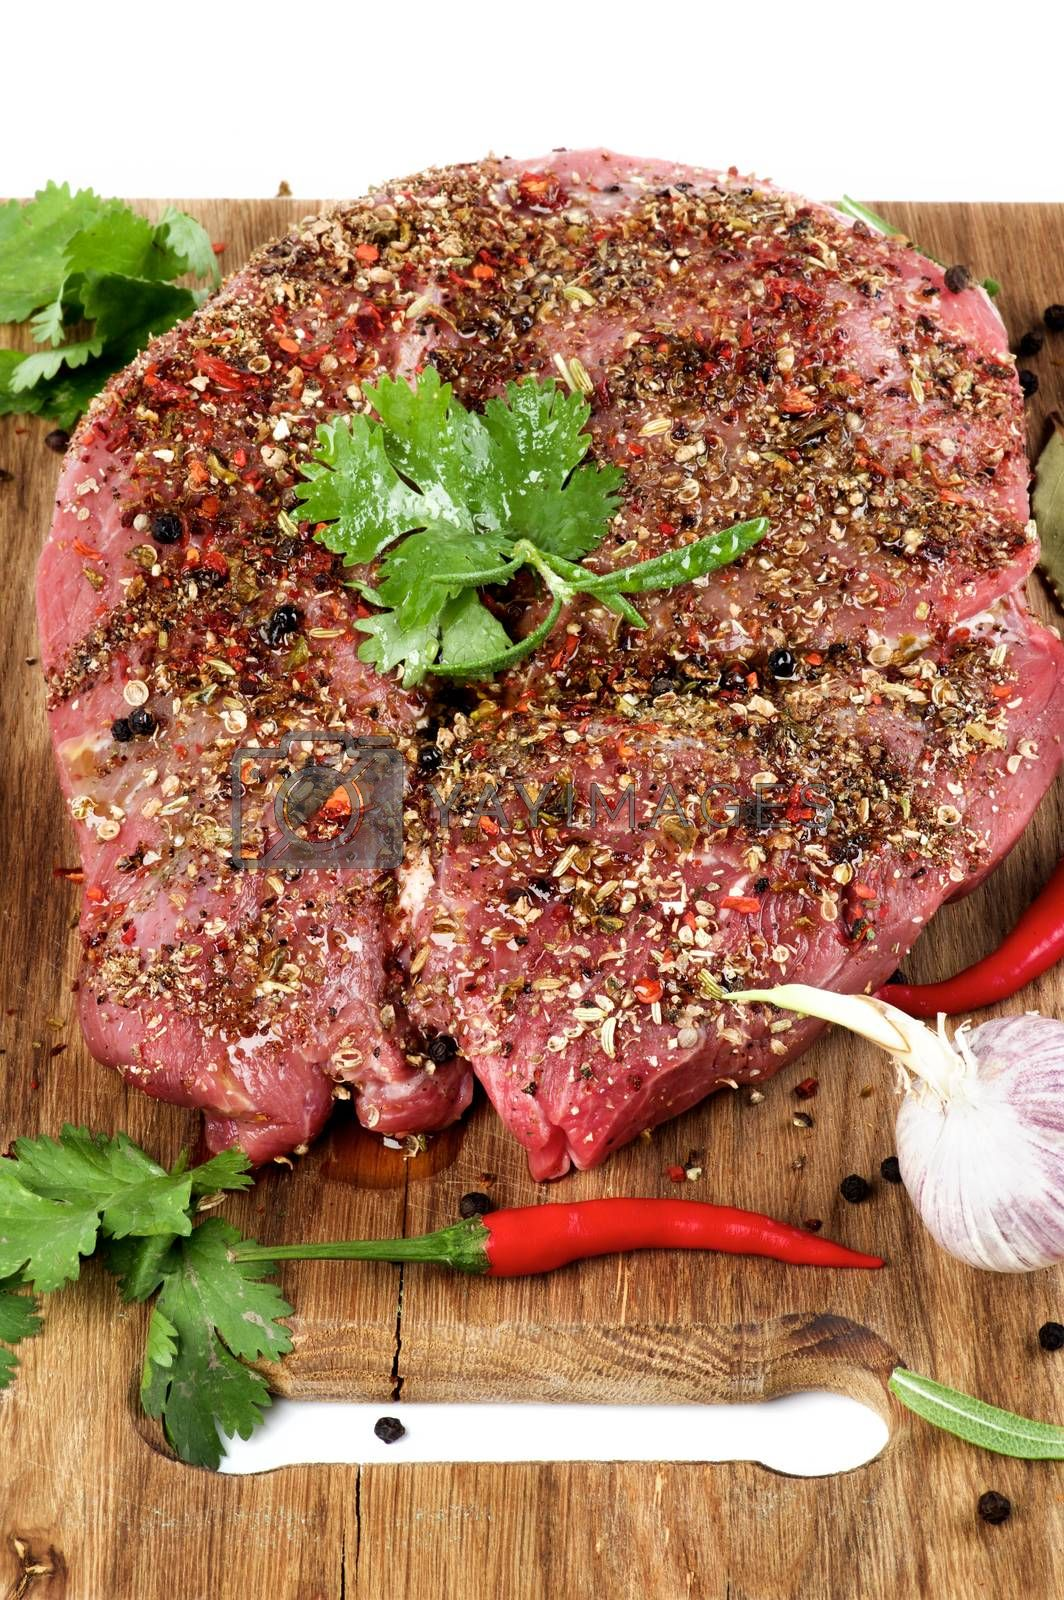 Marinated Raw Boneless Beef Shank with Herbs and Spices, Garlic and Chili Pepper closeup on Wooden Cutting Board on Cross Section on White background